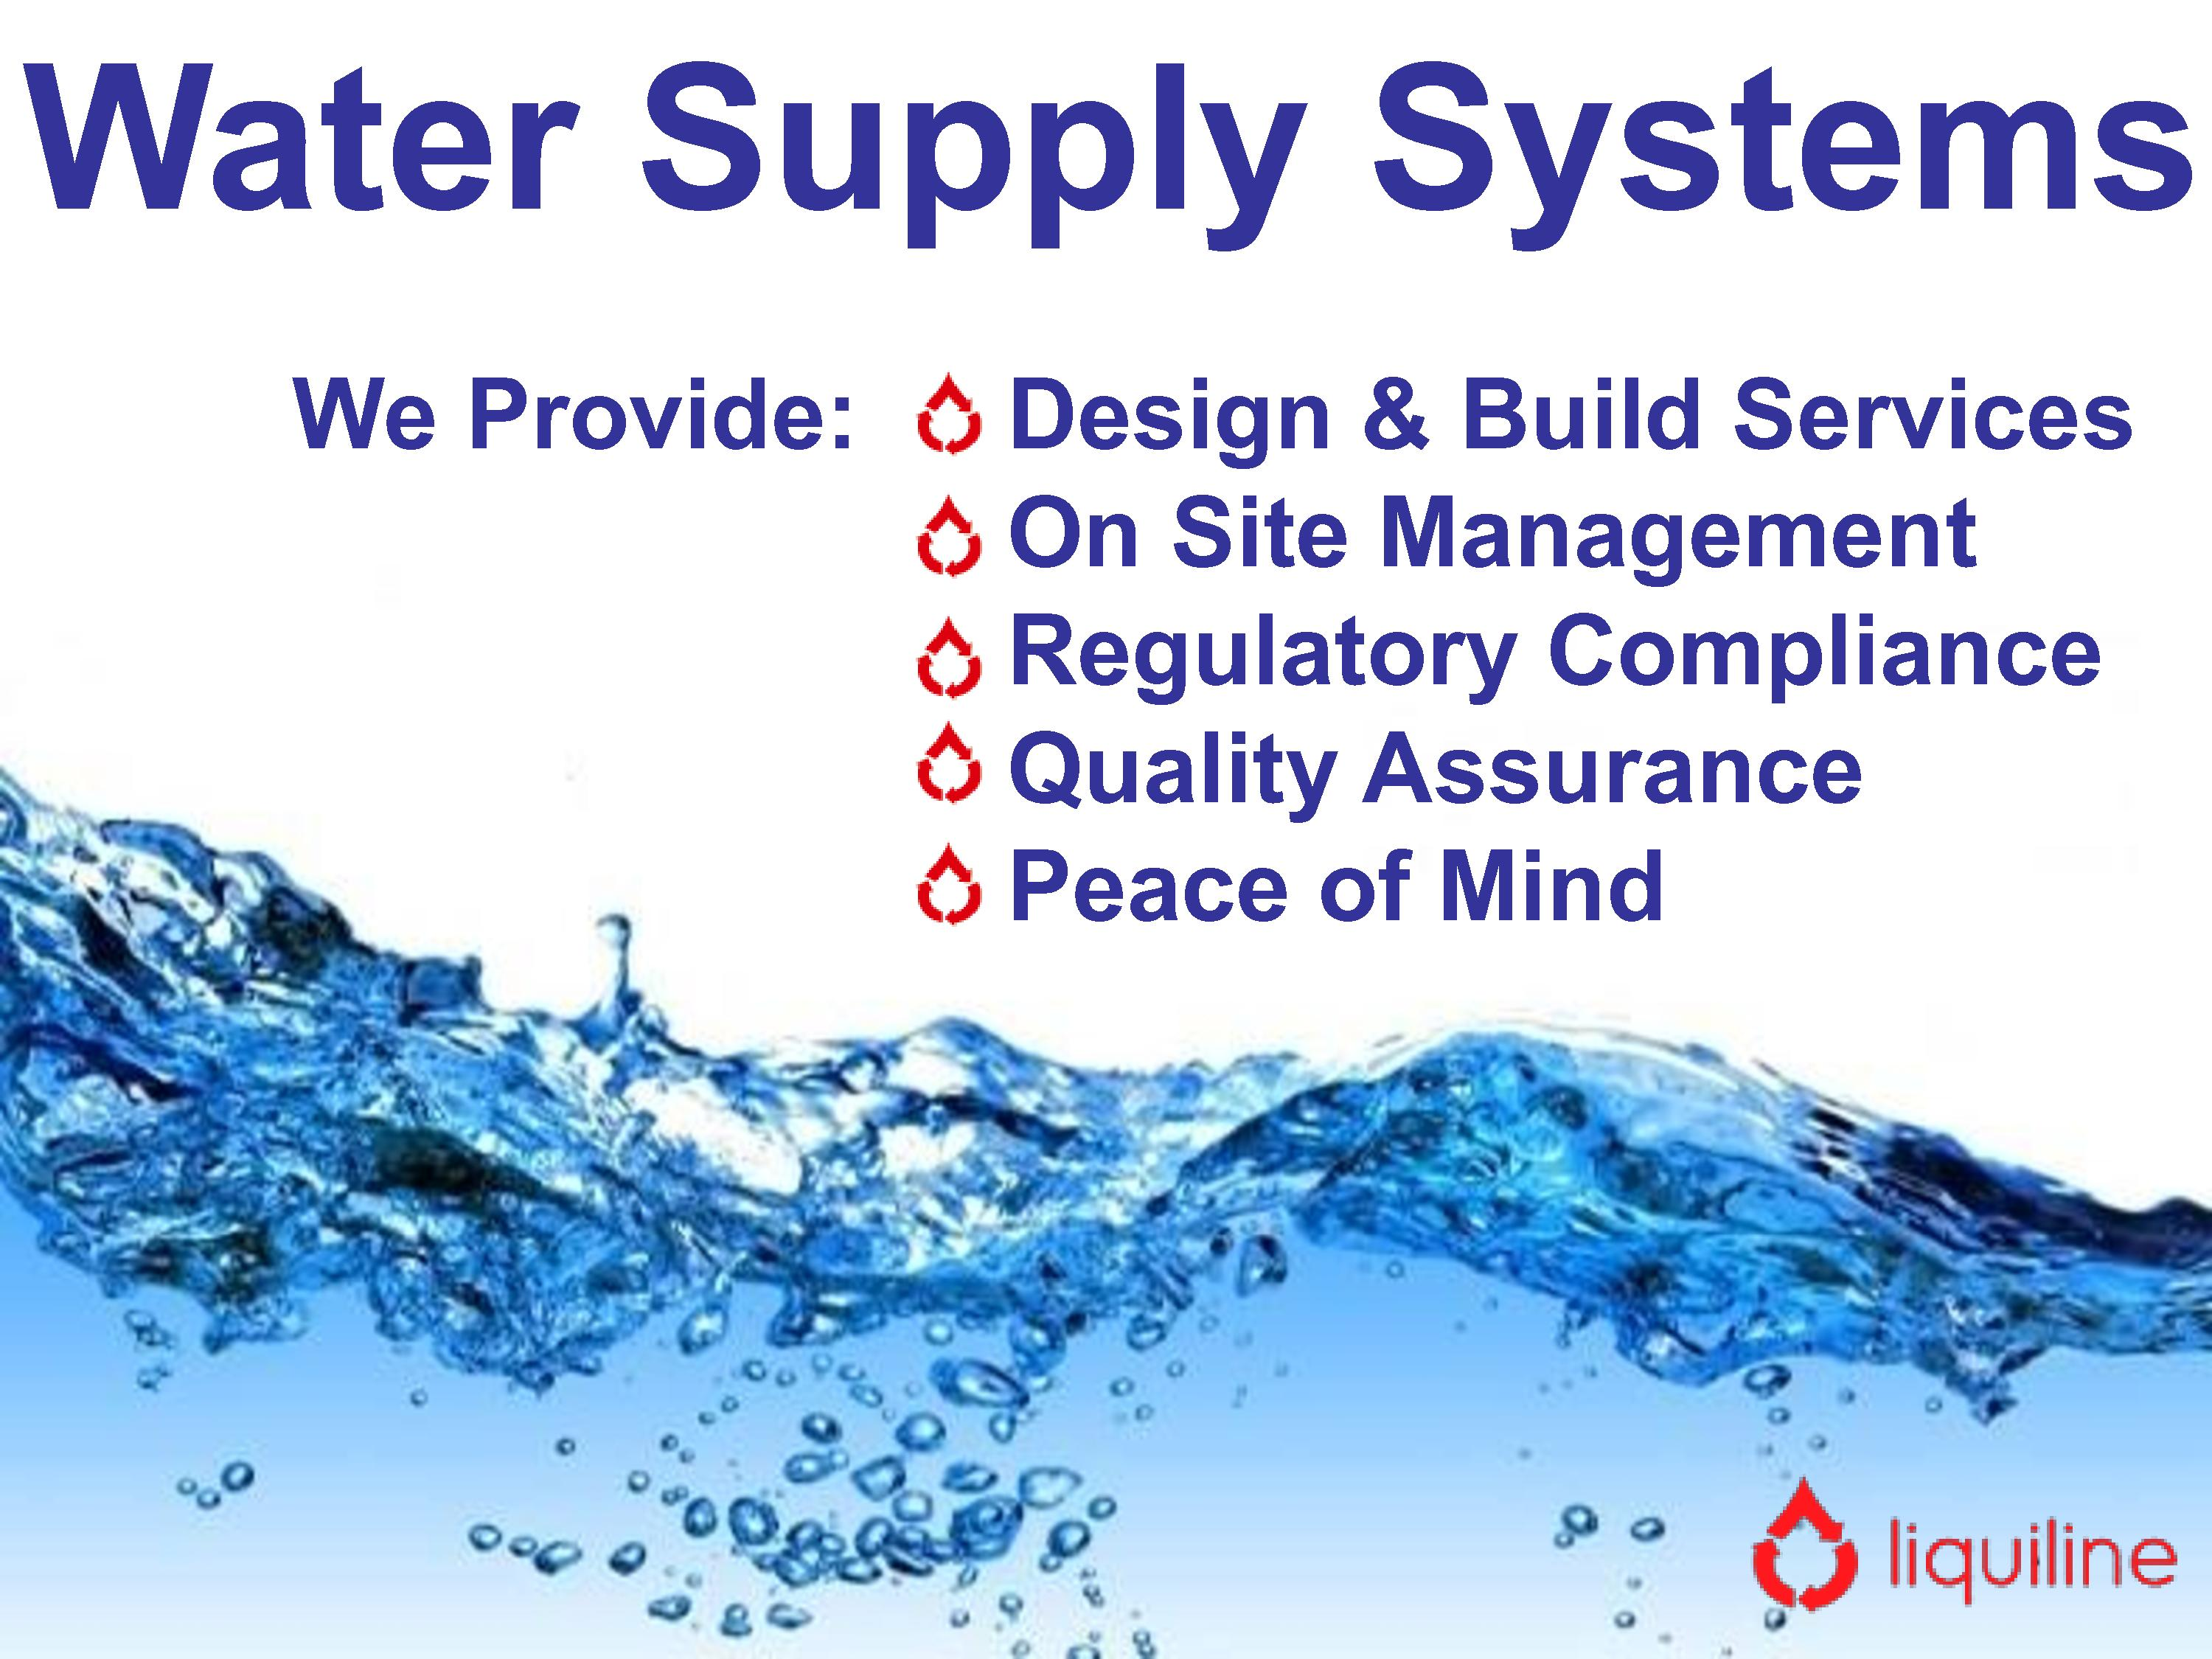 QUALITY ASSURED WATER SYSTEMS